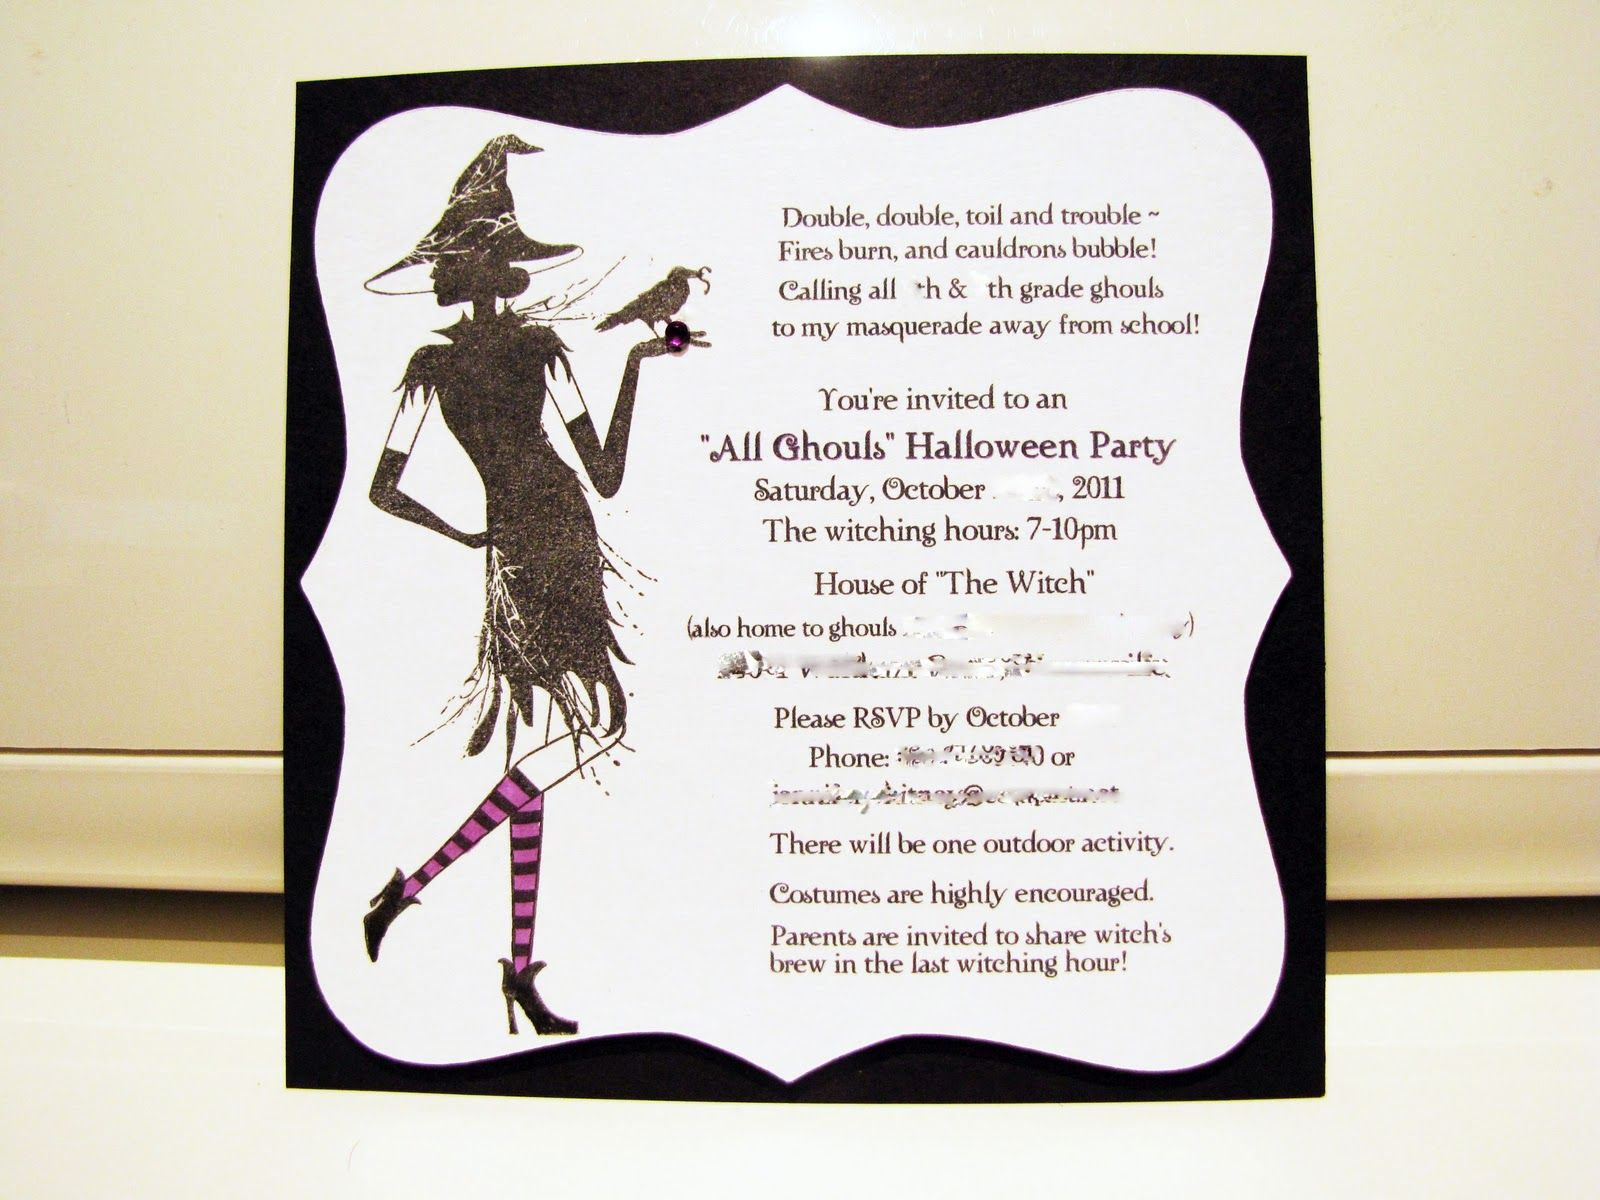 halloween wedding invitations- Mythical answers to Halloween wedding ...